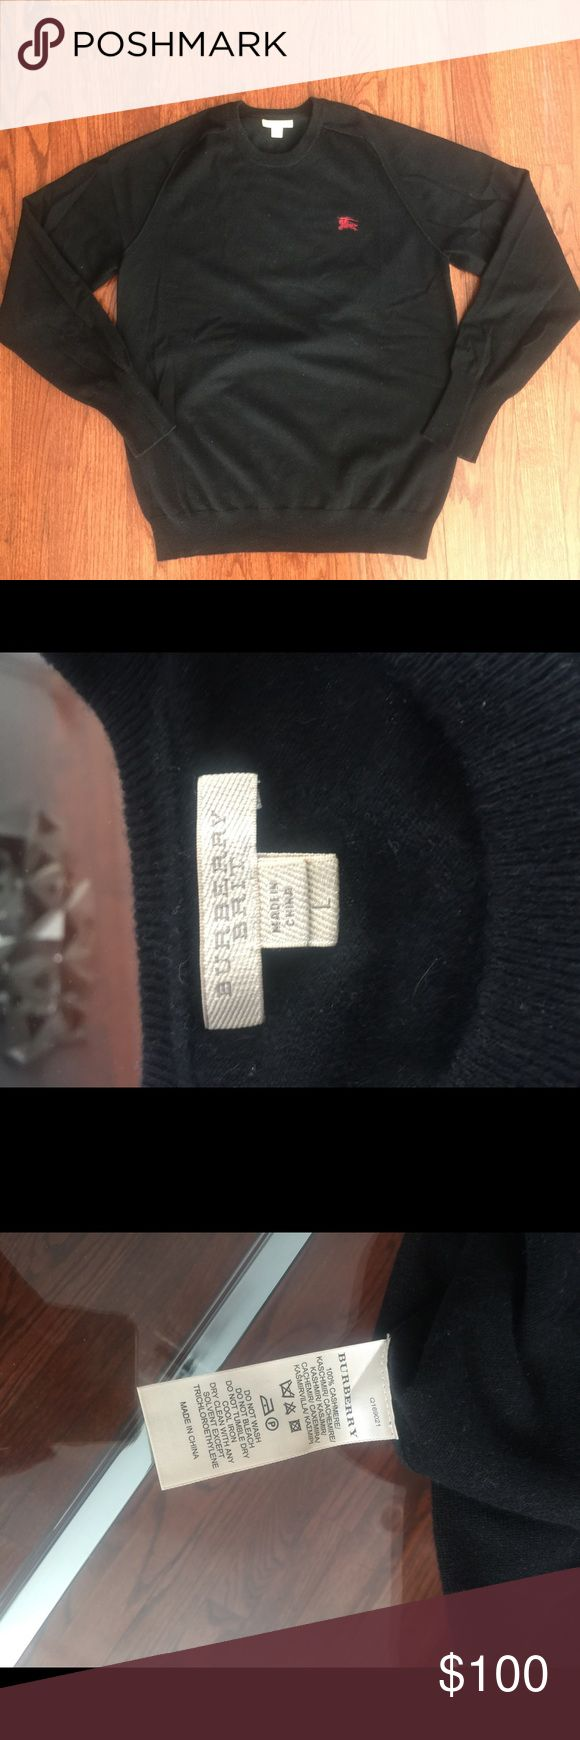 Men's Burberry Brit Cashmere sweater Men's Burberry Brit Cashmere sweater.  Husband got it for Xmas  ripped all tags off and then realized it didn't fit. It is a size L but runs small. Fits more like a Med.  Photographed all of the labels and logos let me know if you have any questions Burberry Sweaters Crewneck